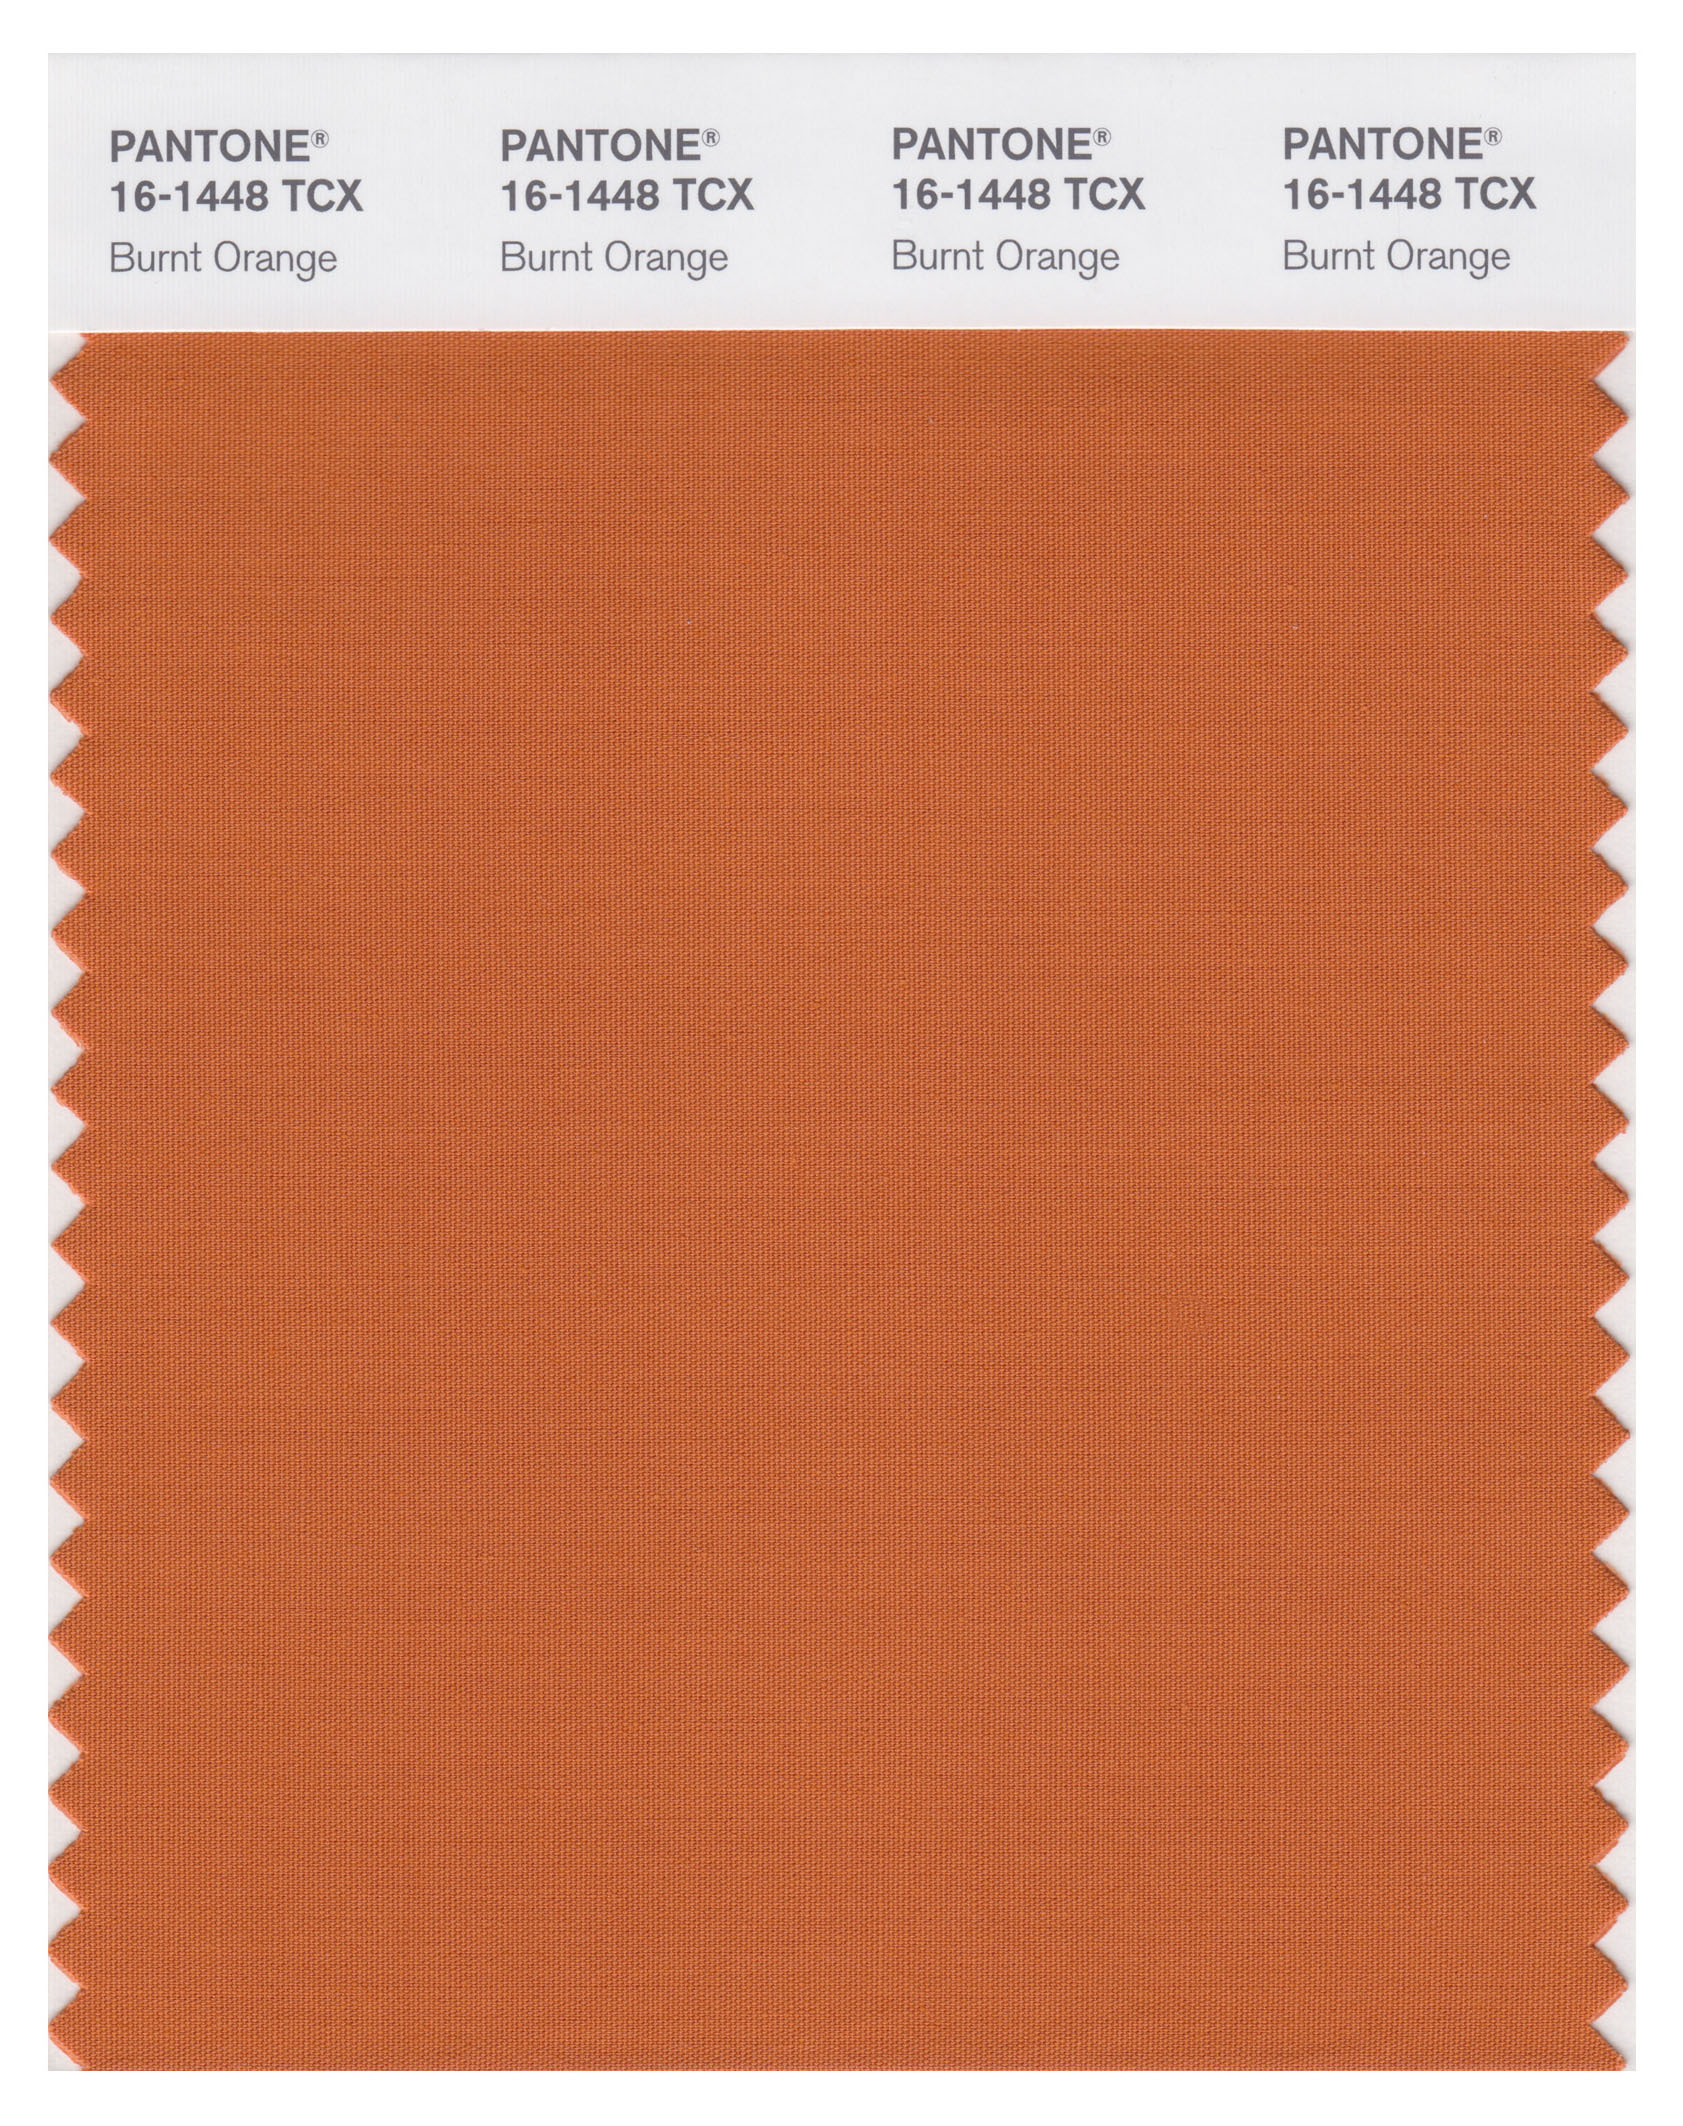 1- Burnt Orange.jpg